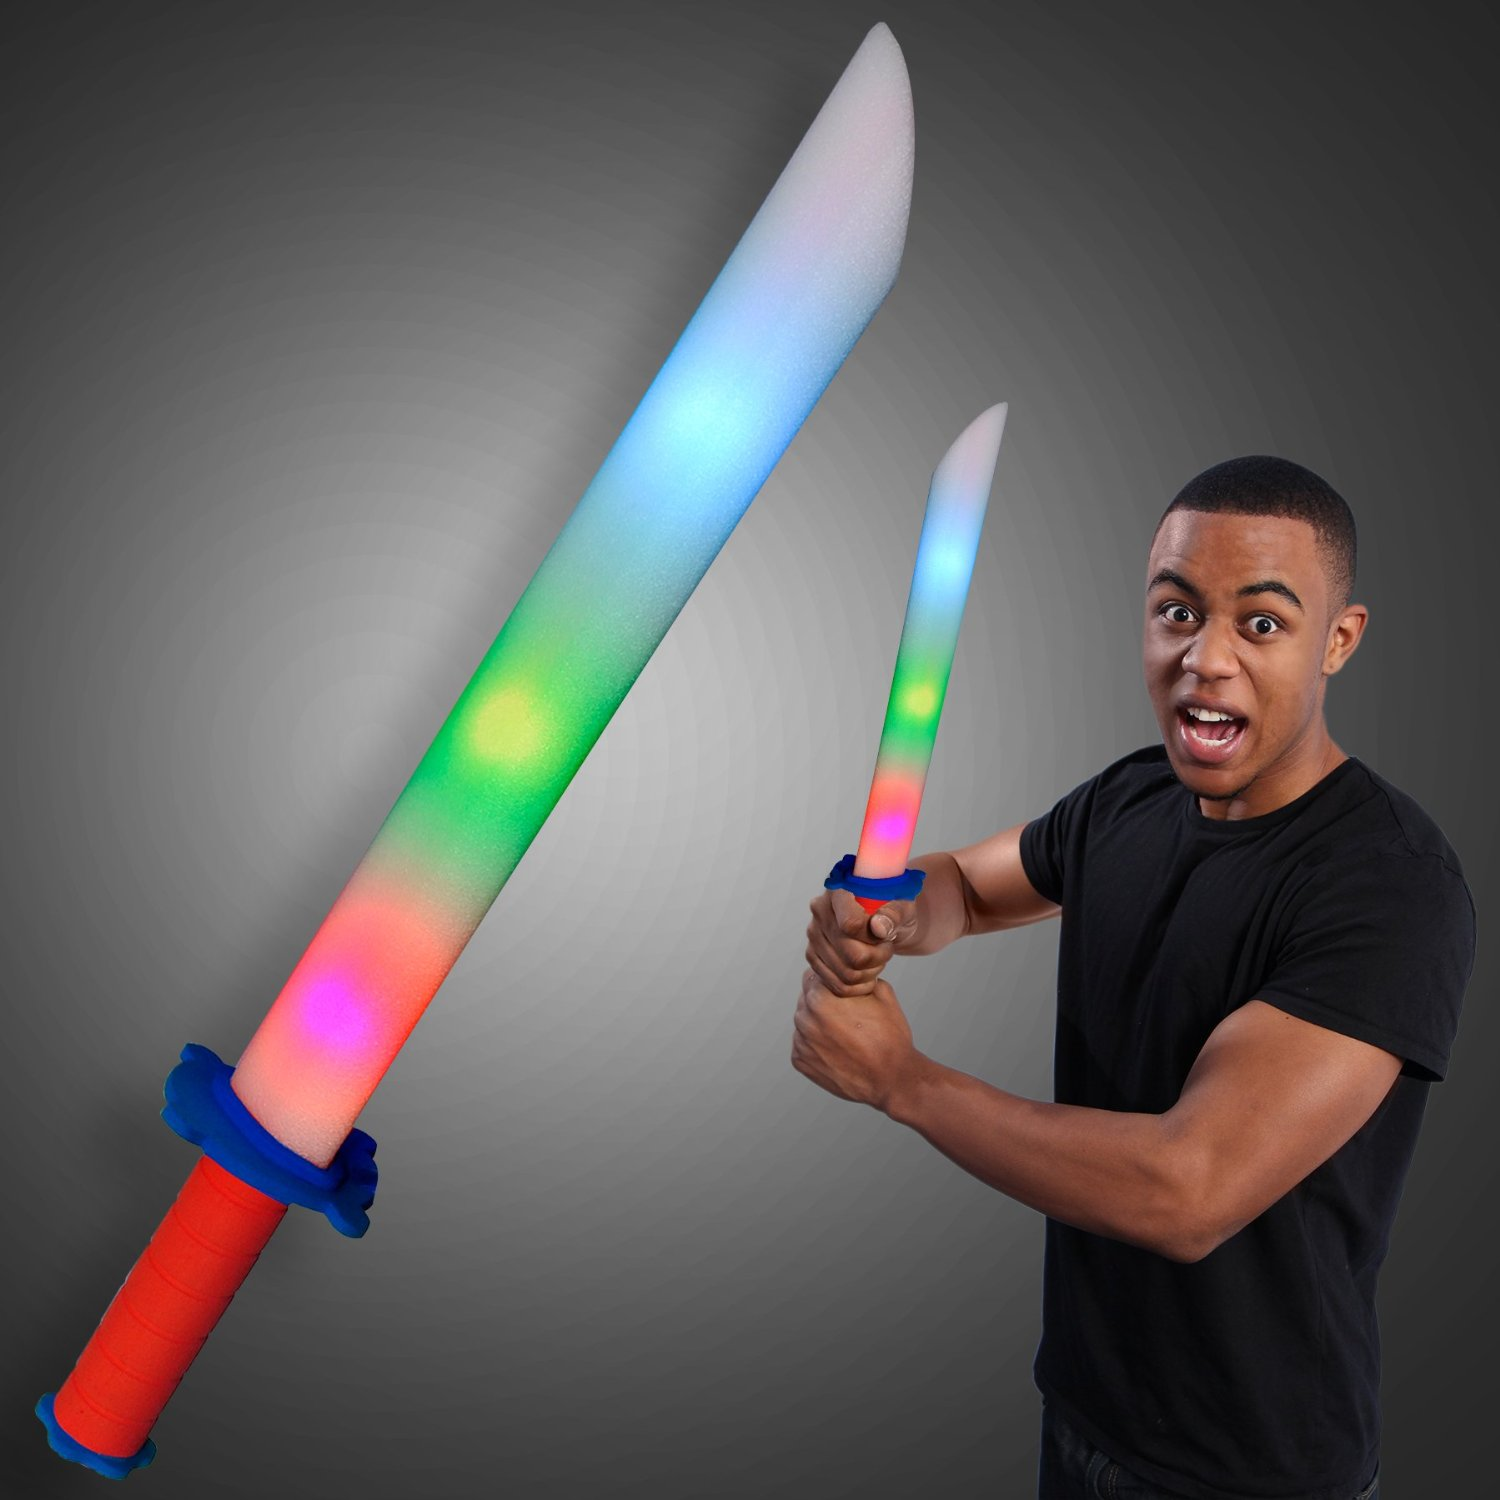 Foam Sword, Light Up LED Flashing Toy / Prop